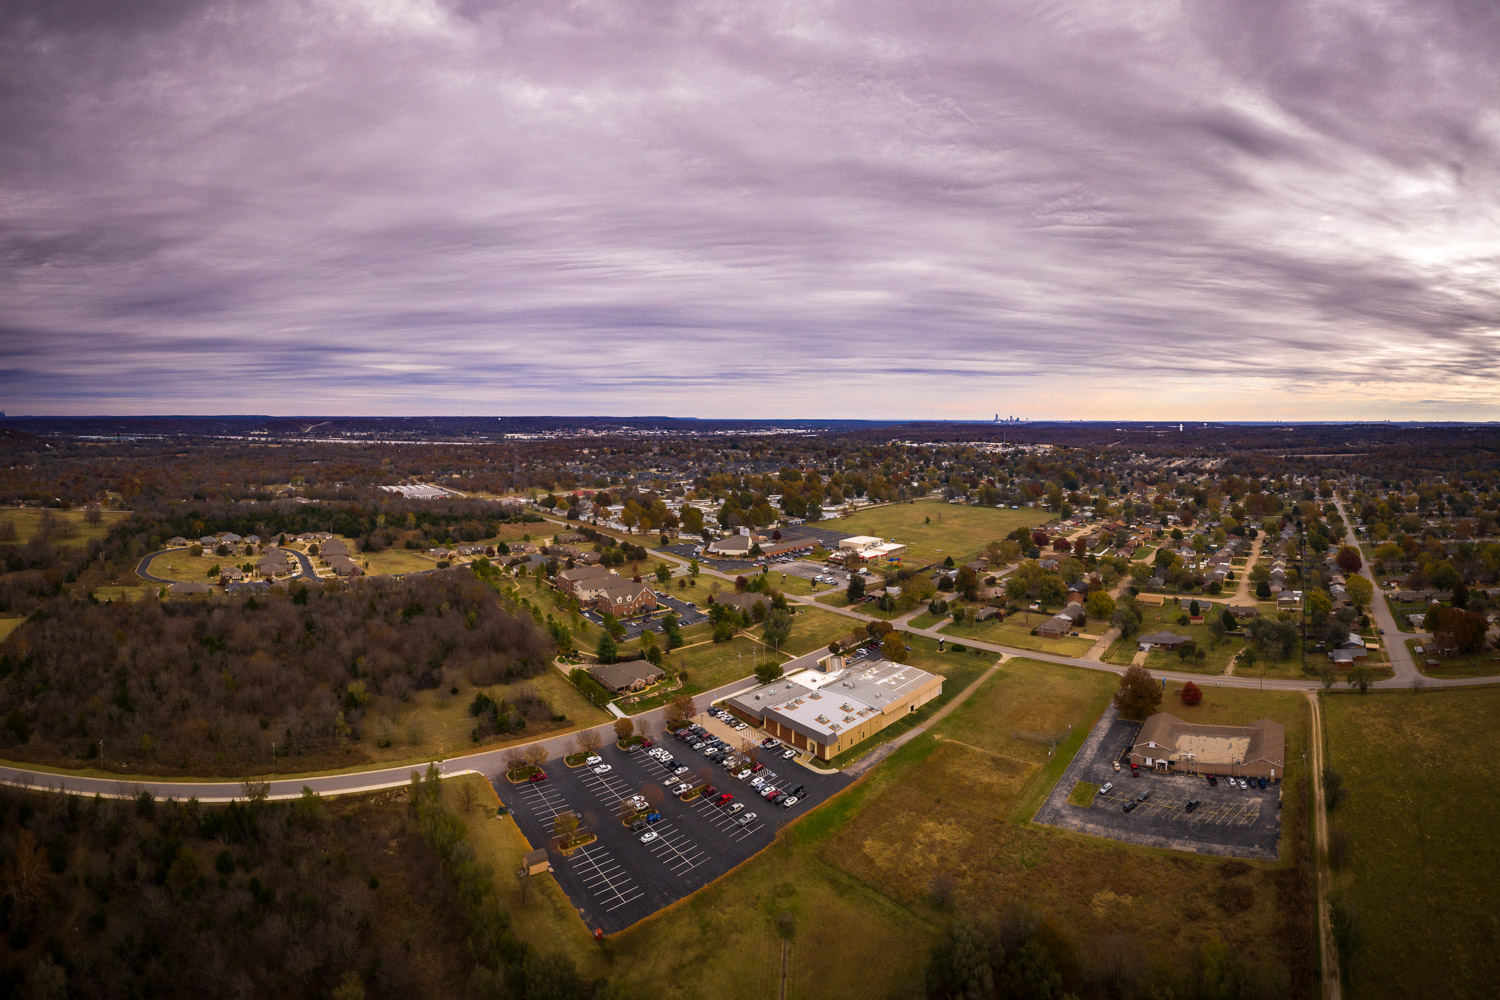 CrossPoint Photos - web ready - drone images-2.jpg